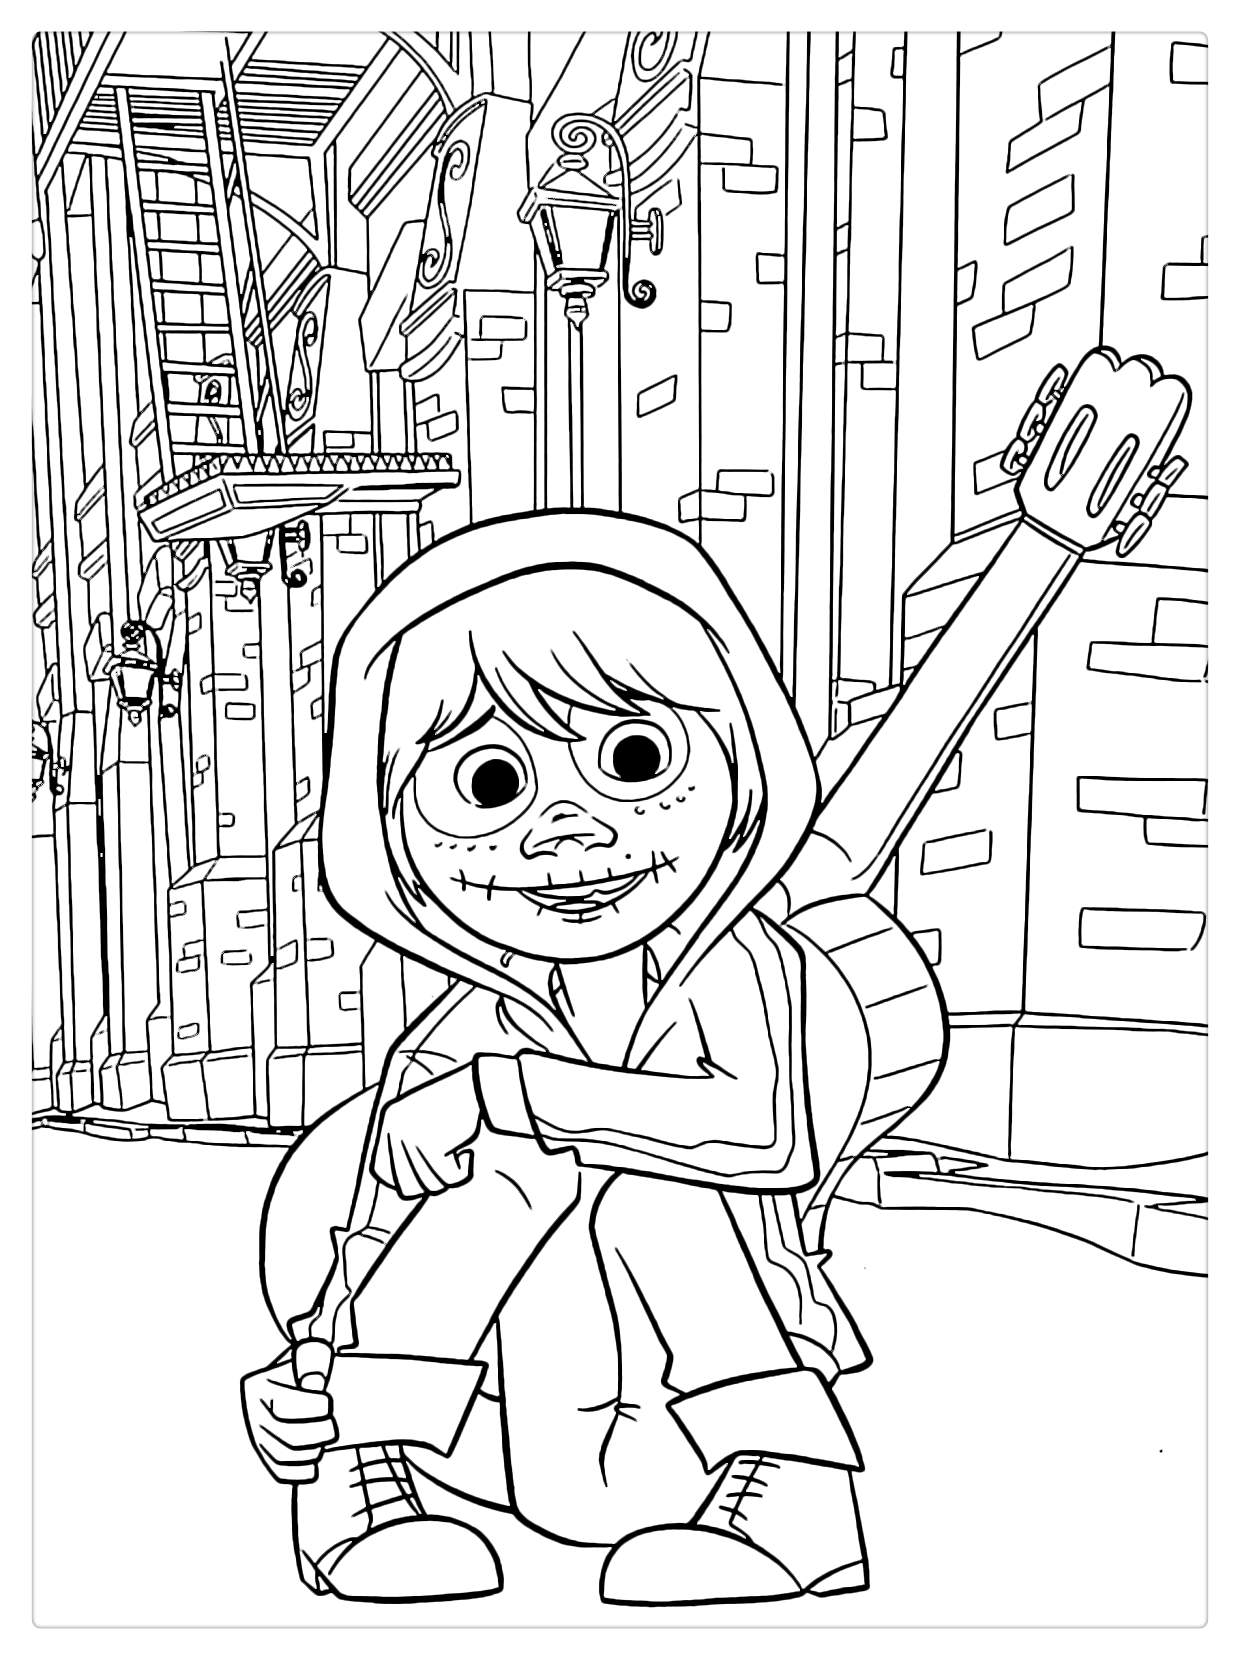 Coco Coloring Pages Miguel Lineart